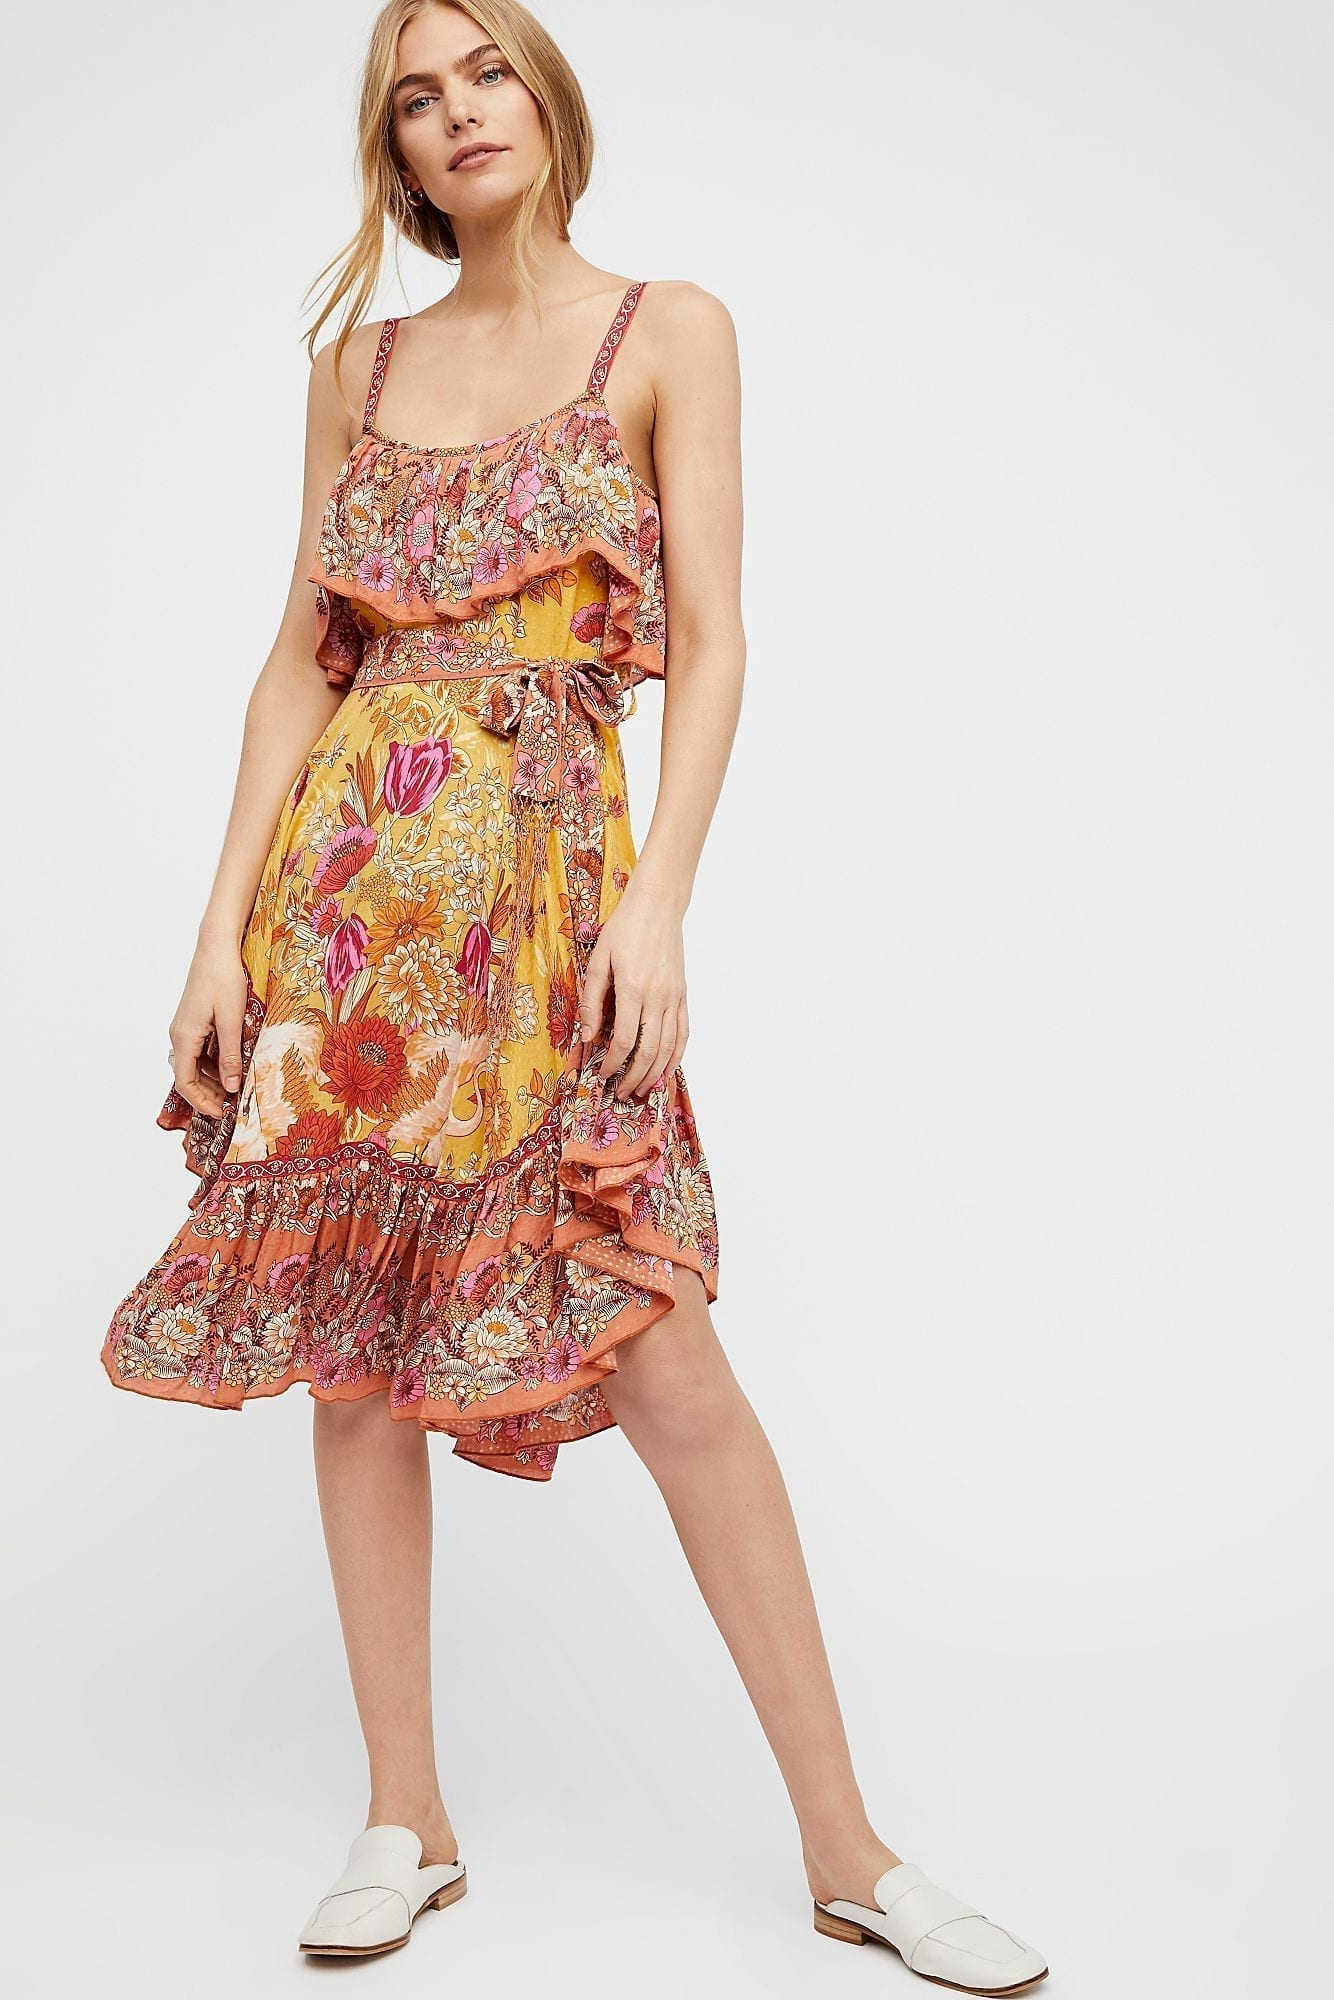 SPELL AND THE GYPSY COLLECTIVE Siren Song Strappy Marigold Dress